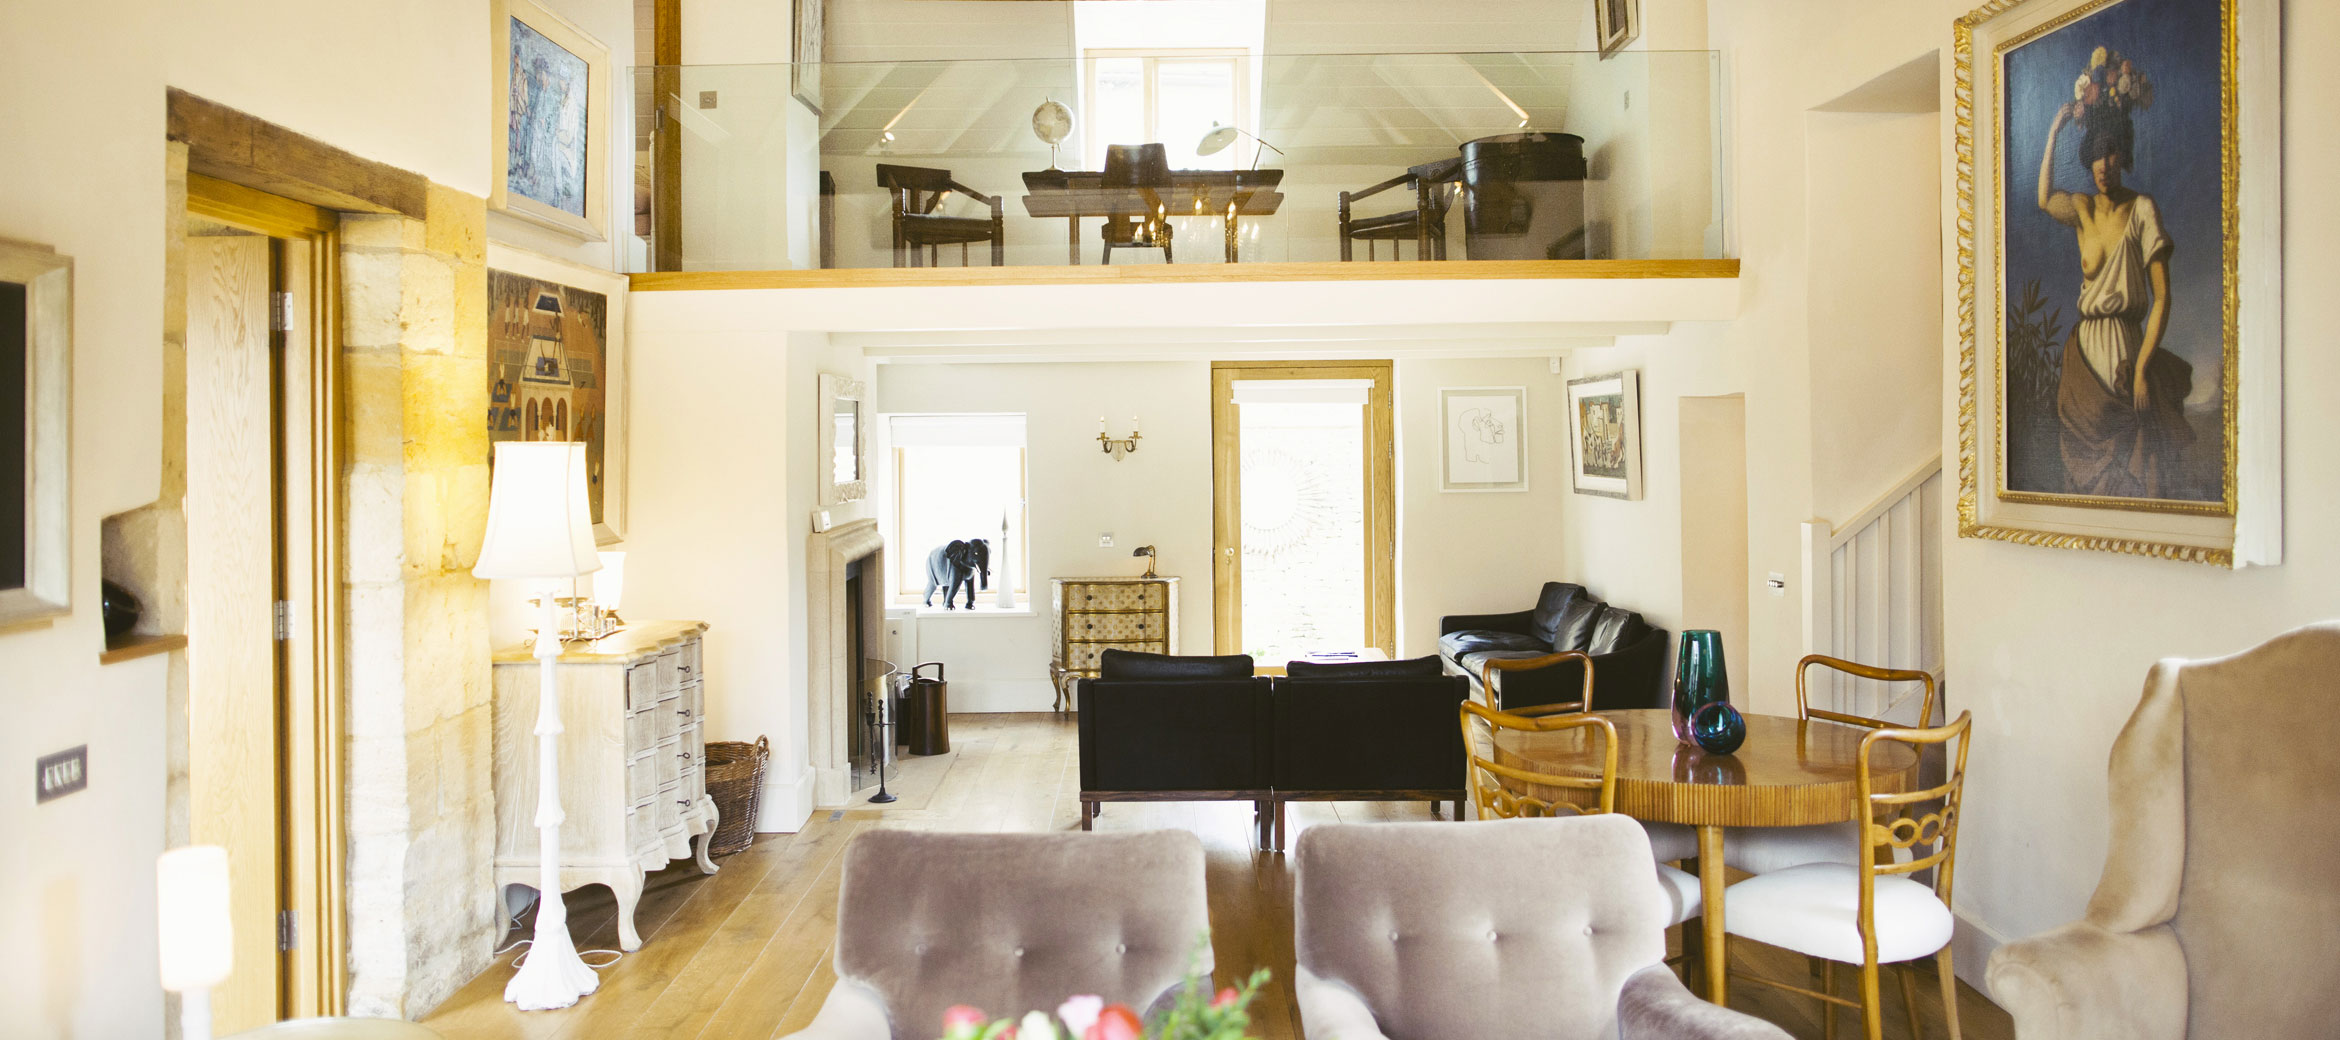 Temple-Guiting-Barn-Drawing-Room-Study